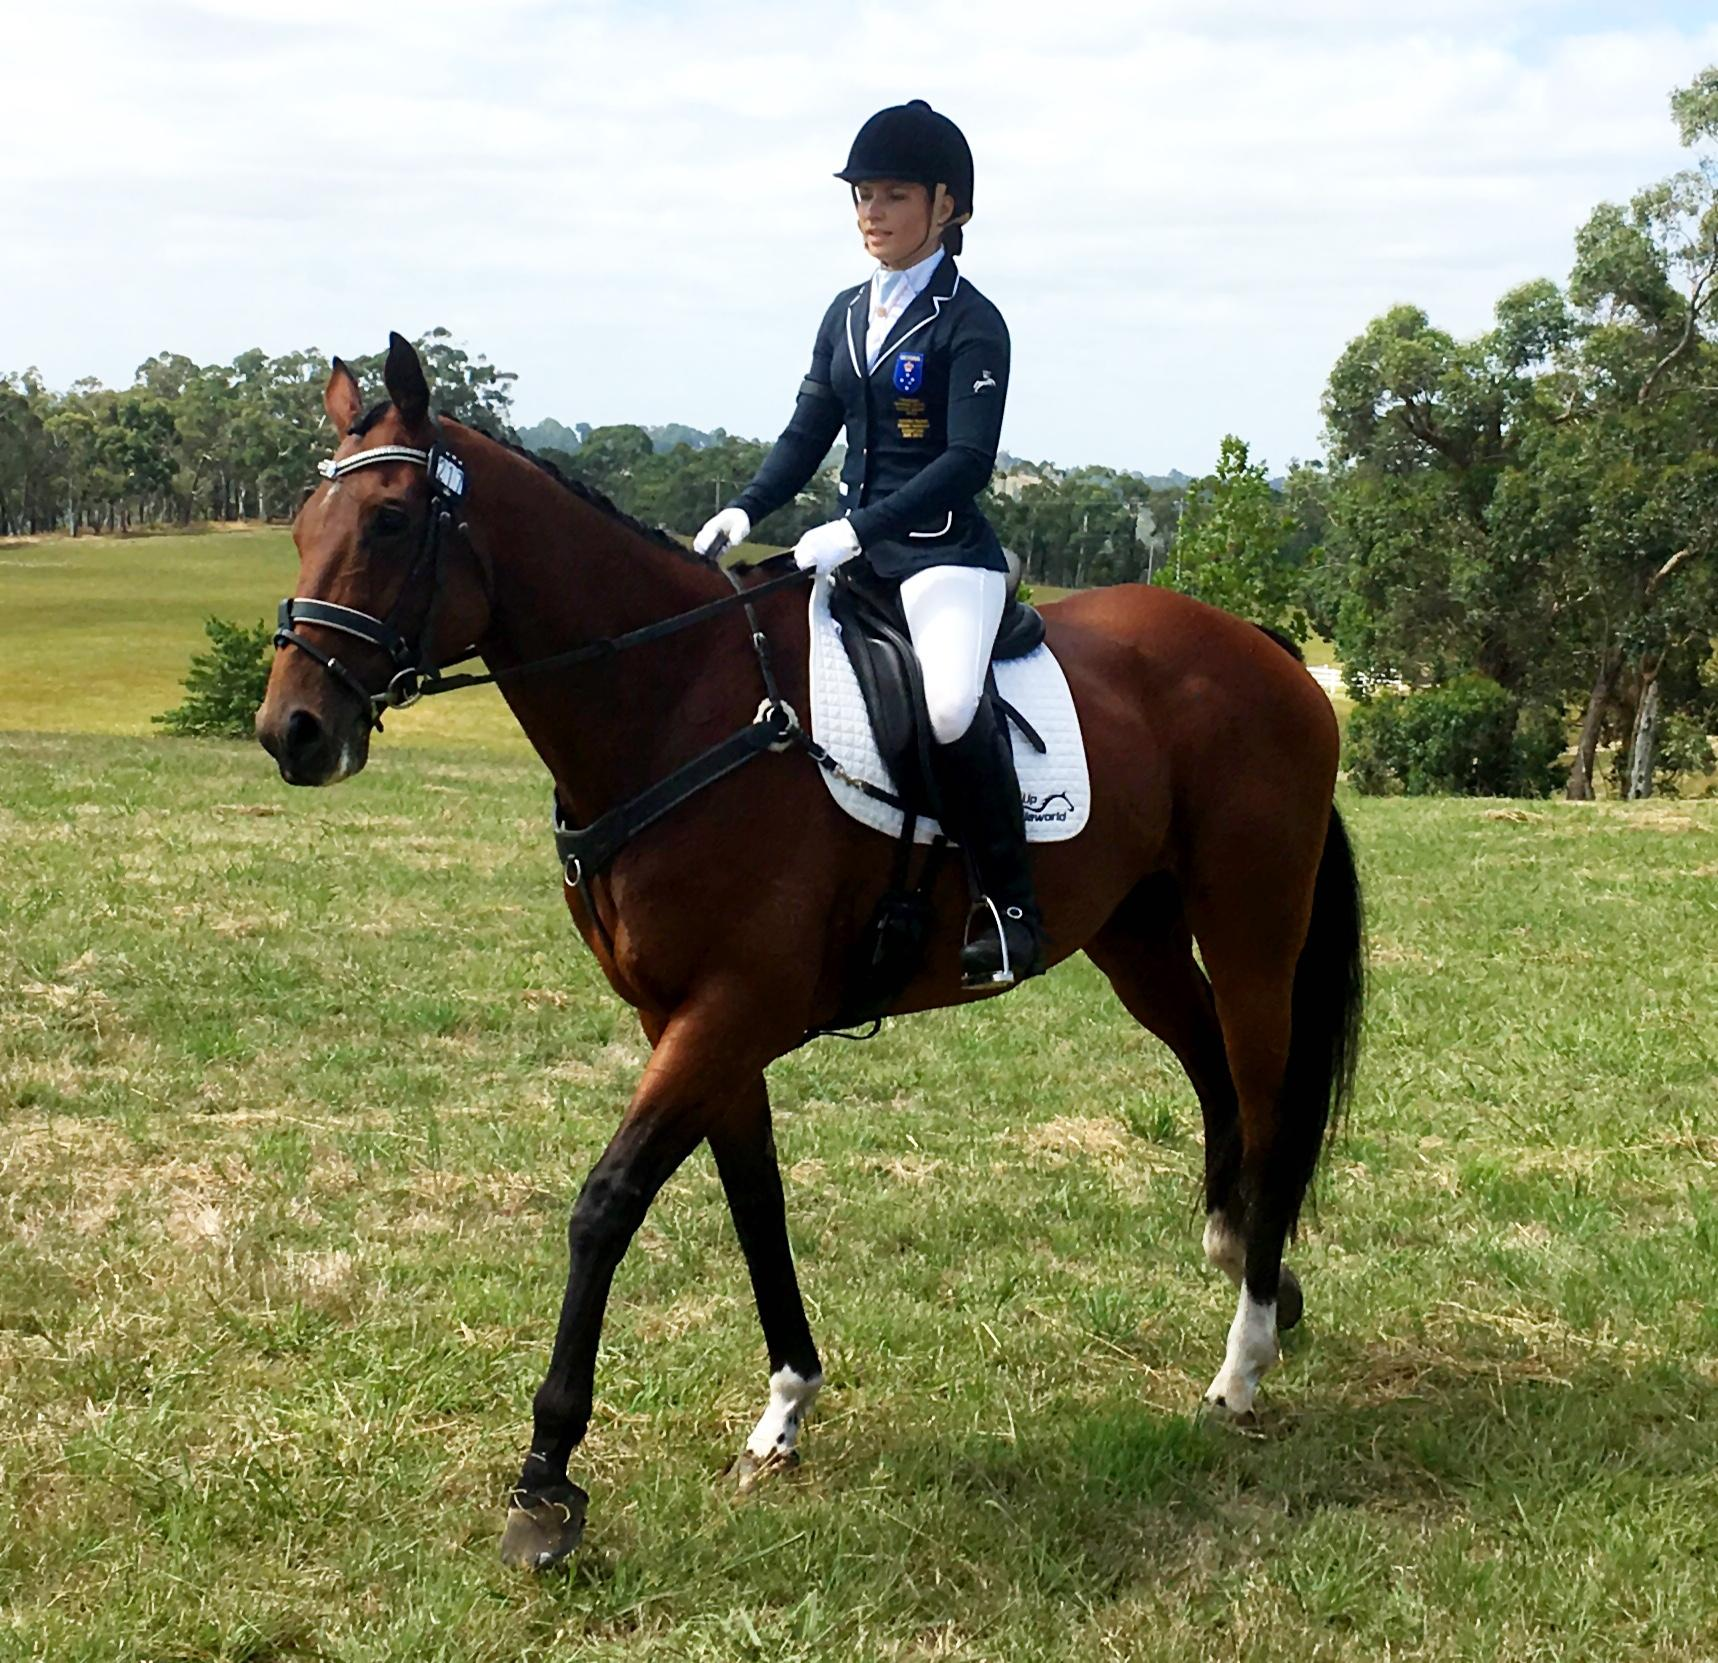 Honest stress free eventer that ANYONE can ride